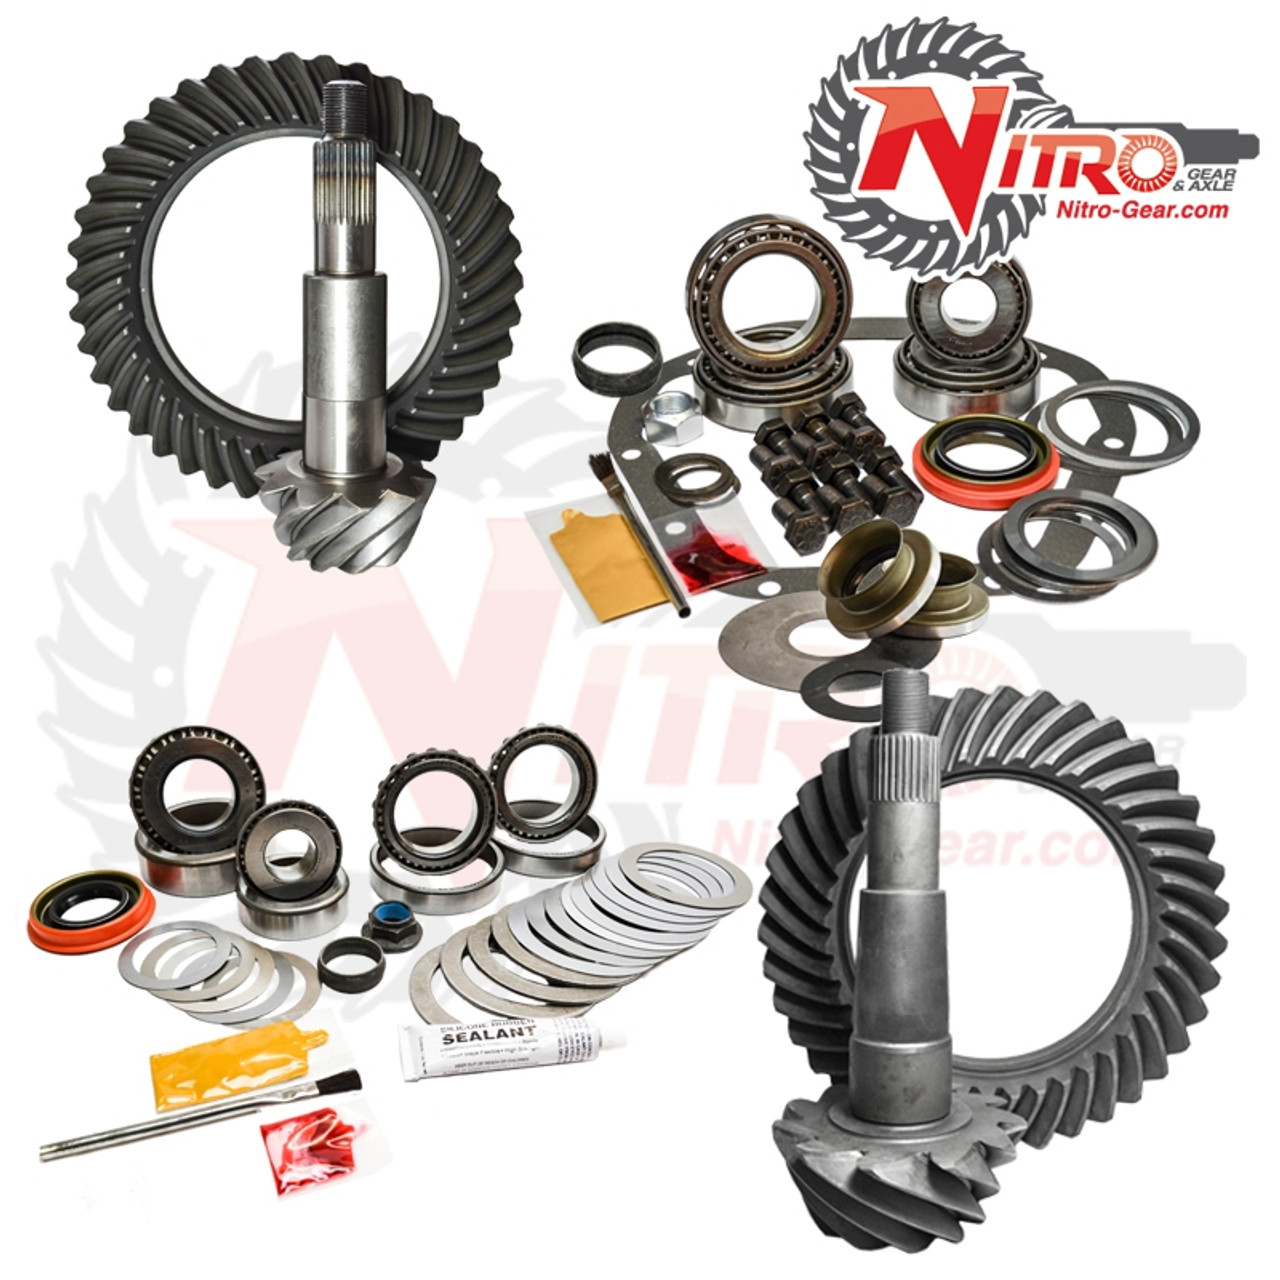 02-10 Ford F250/350 5.38 Ratio Gear Package Kit Nitro Gear and Axle